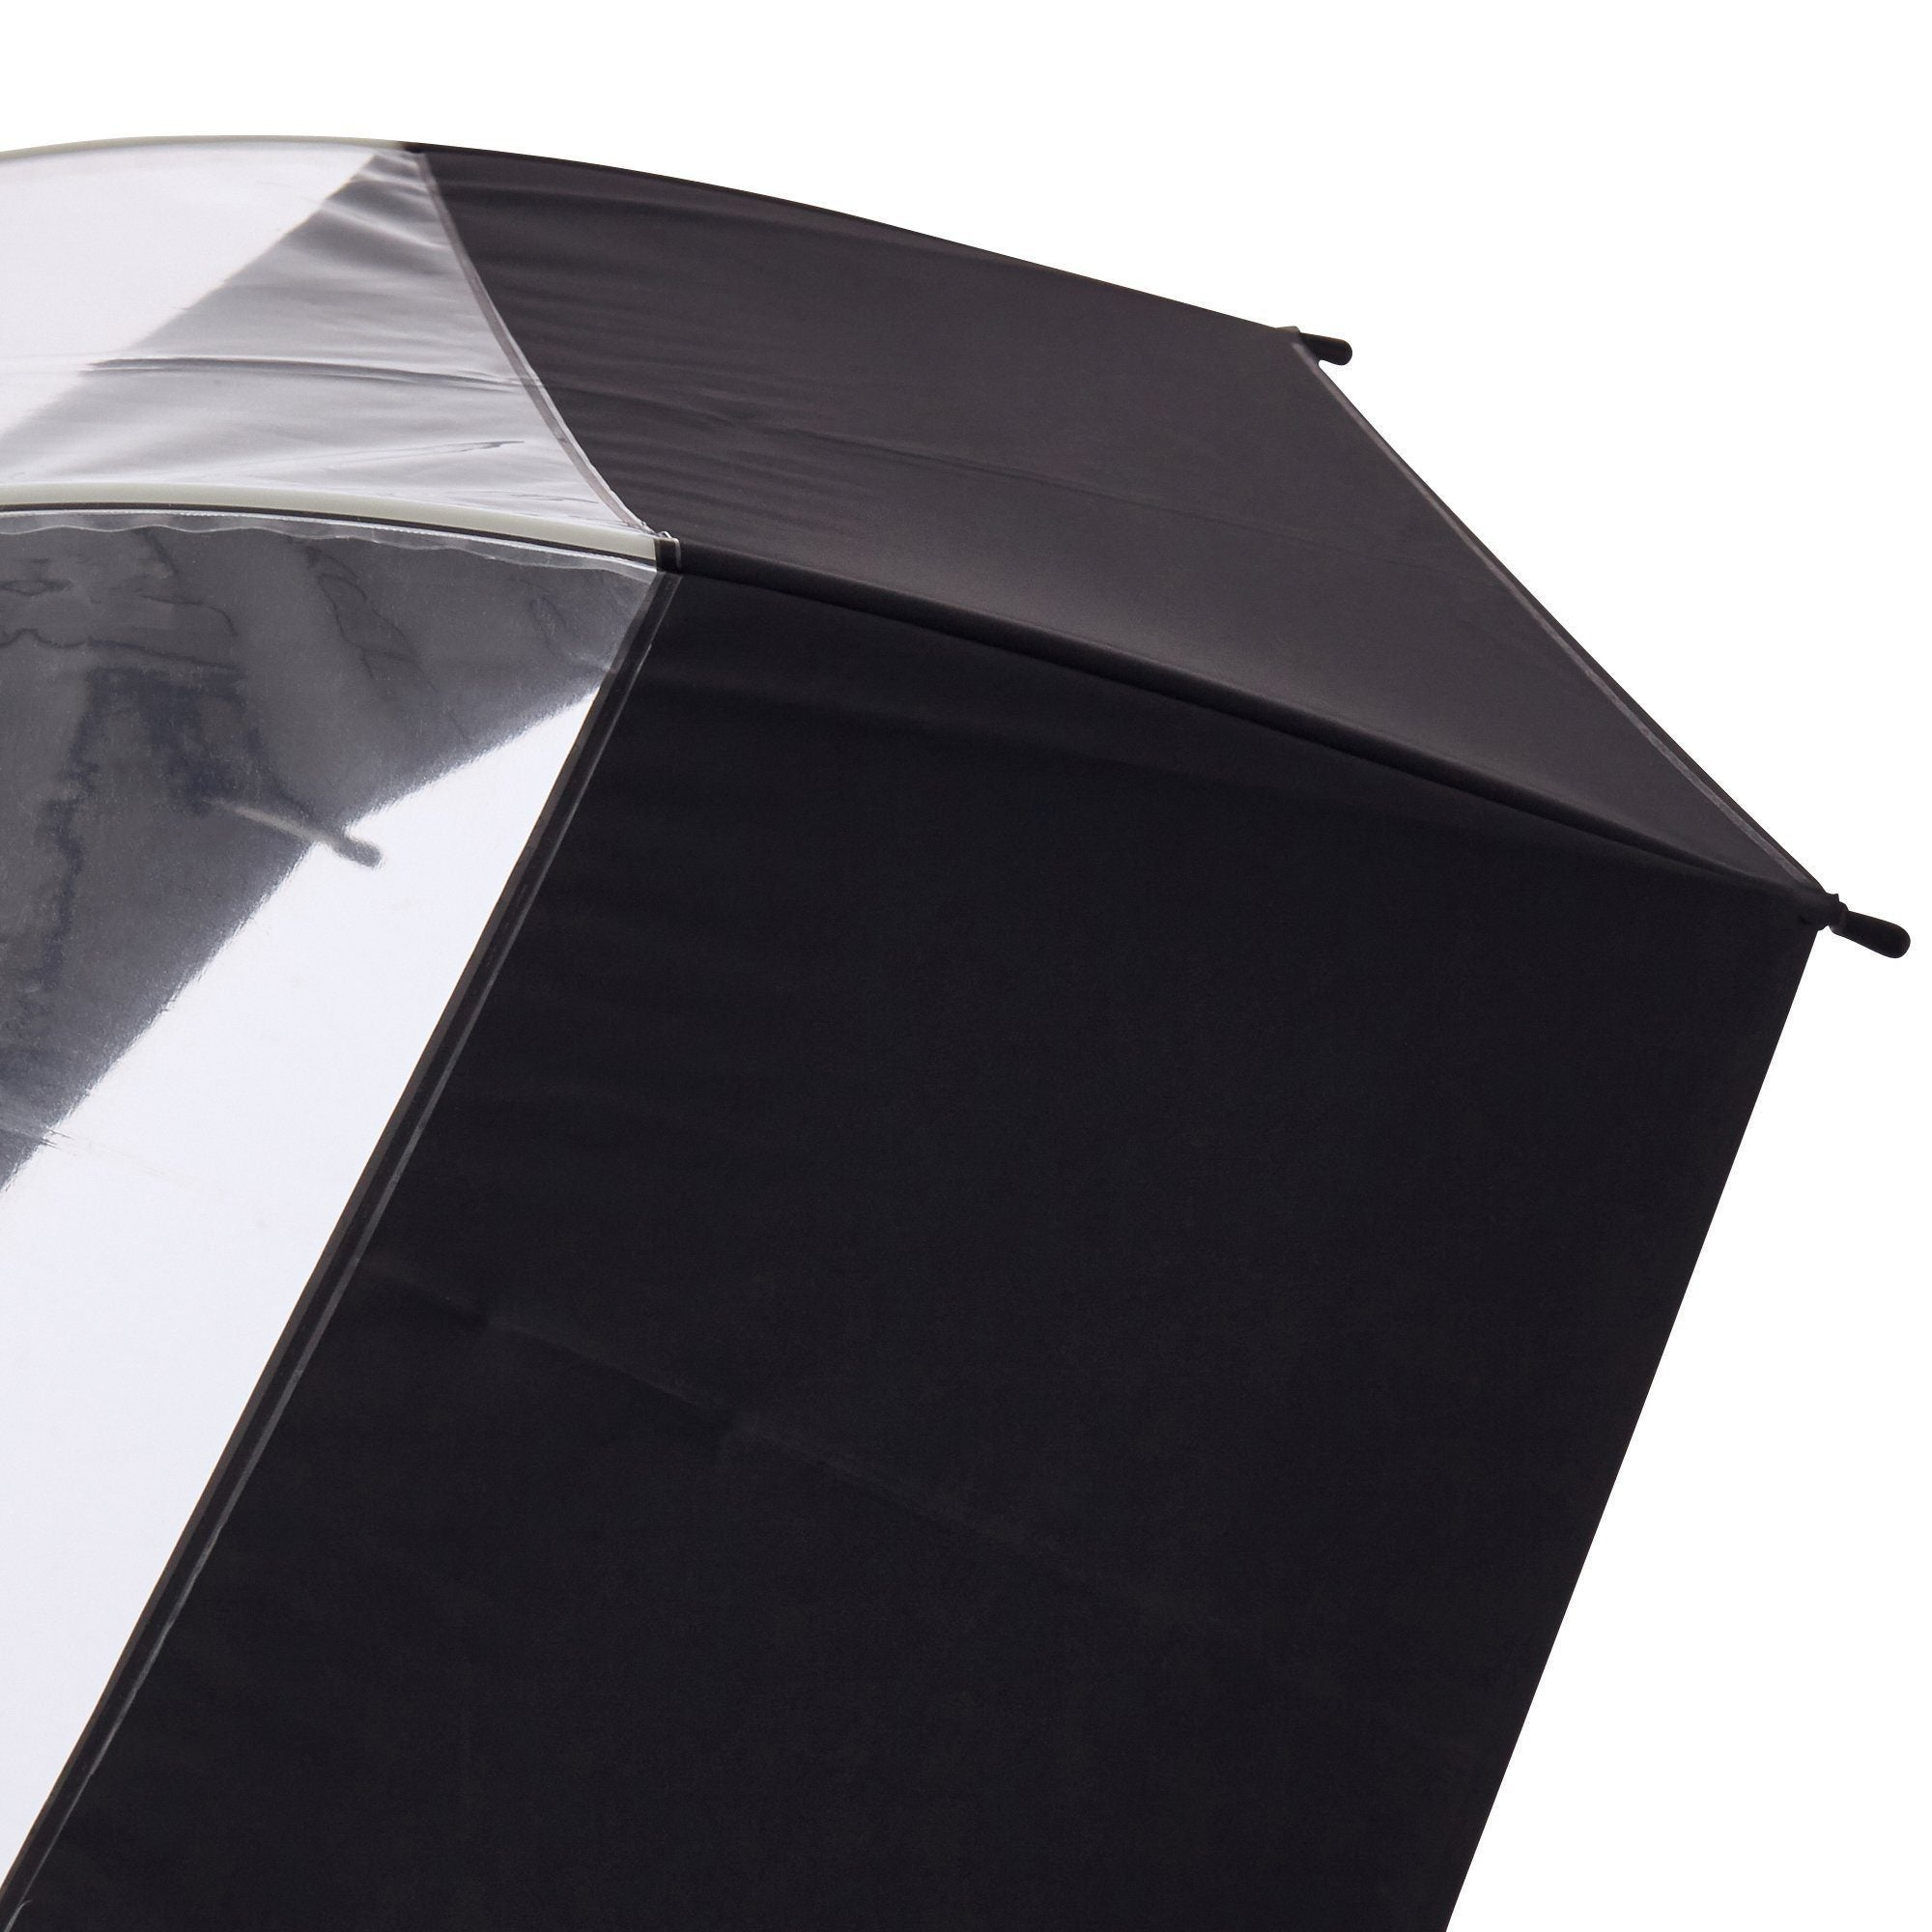 PLUIE Plastic Umbrella Black - weare-francfranc